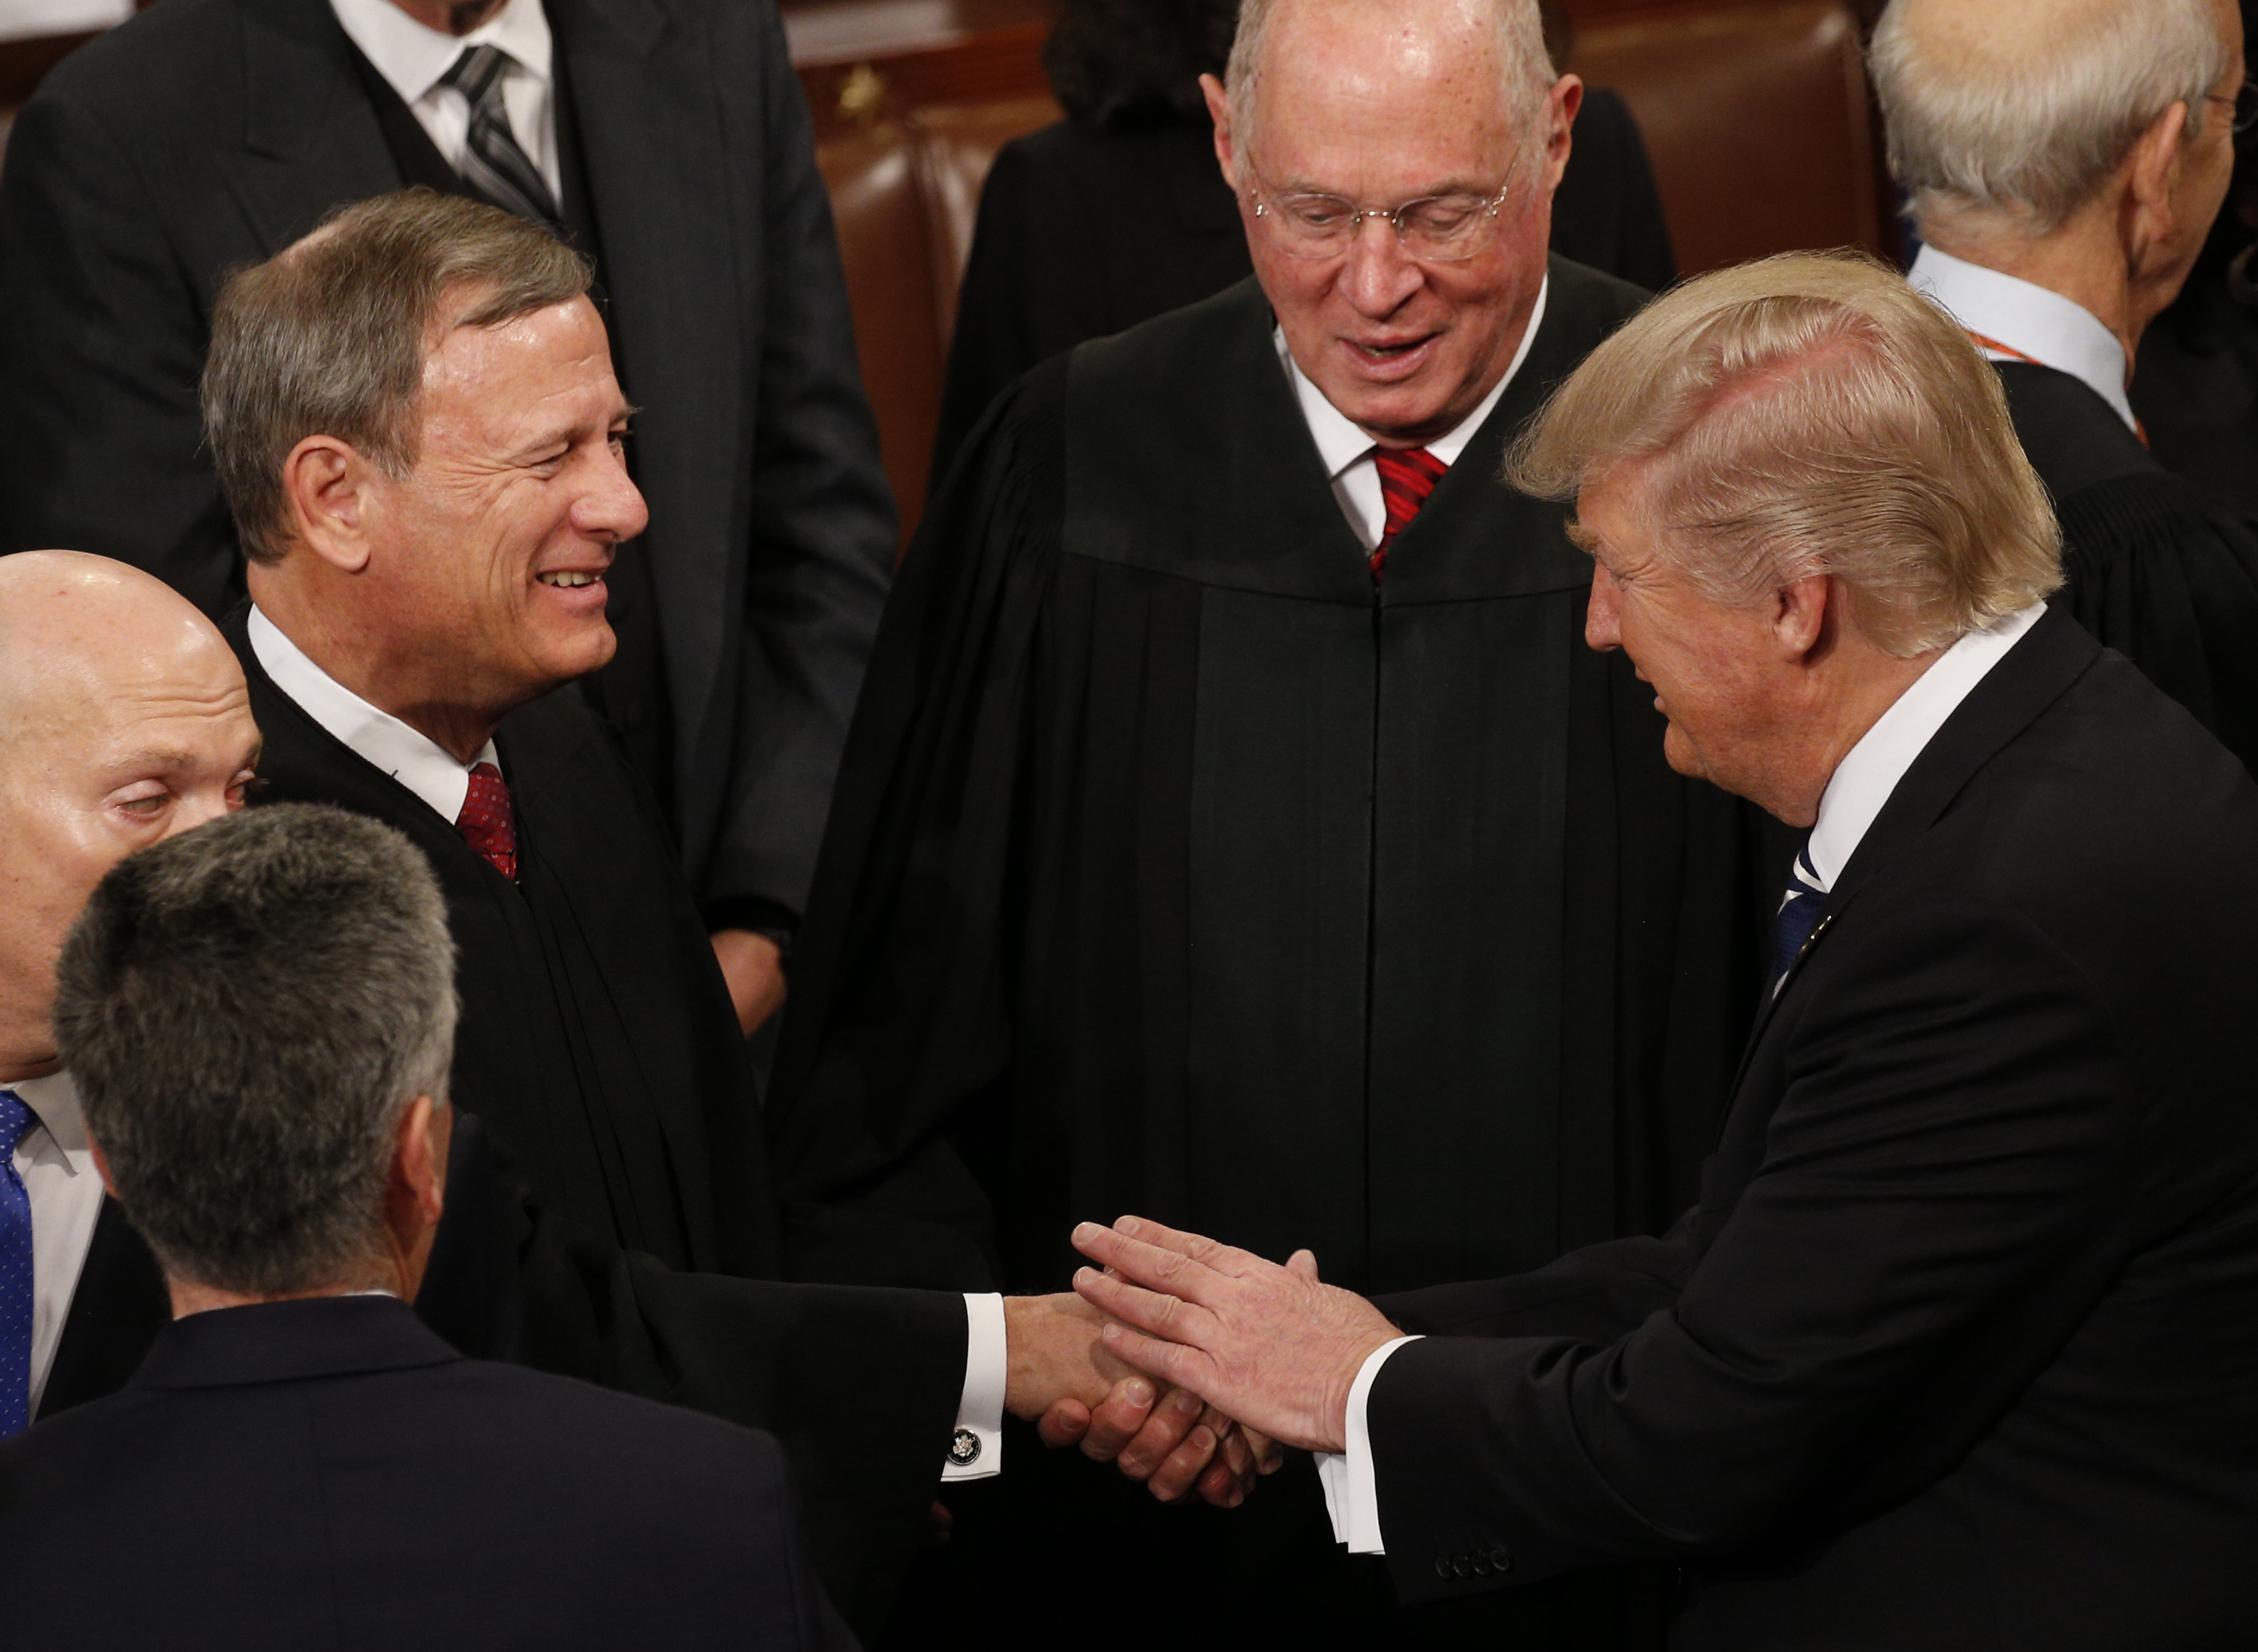 President Donald Trump shakes hands with Chief Justice John Roberts after addressing the U.S. Congress. REUTERS/Kevin Lamarque